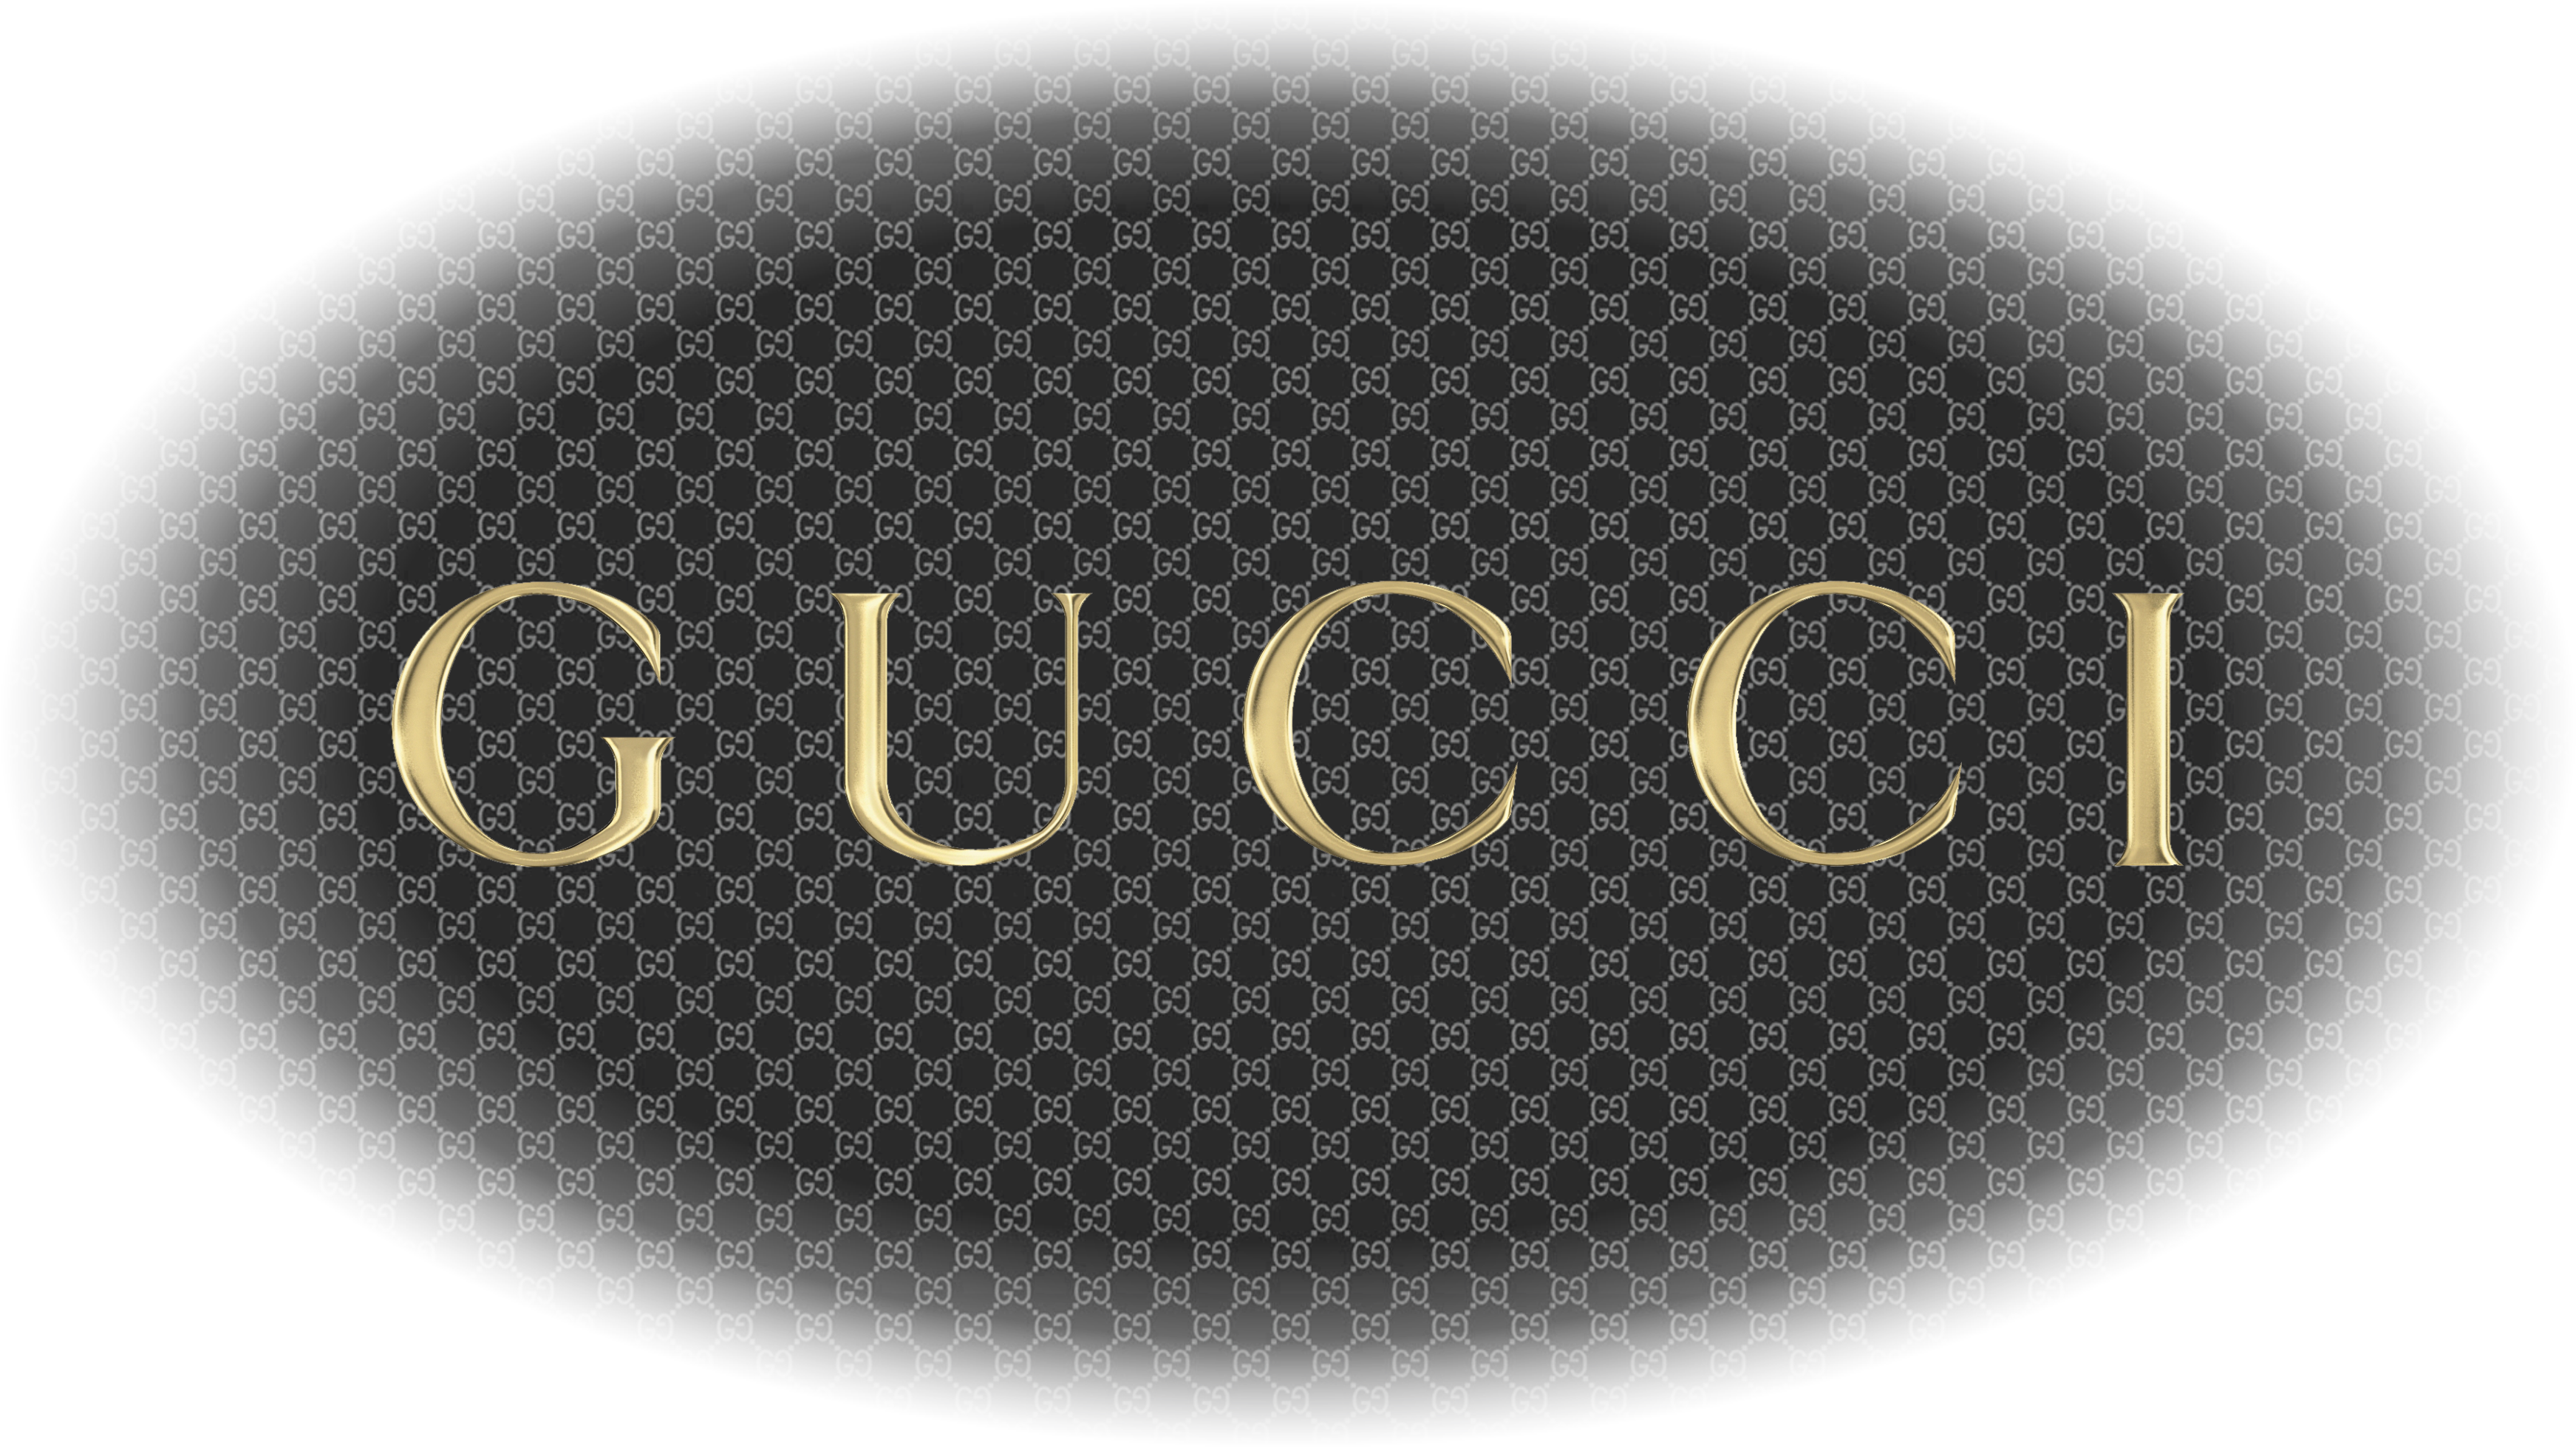 Gucci logo gold png. Wallpapers hd pixelstalk net